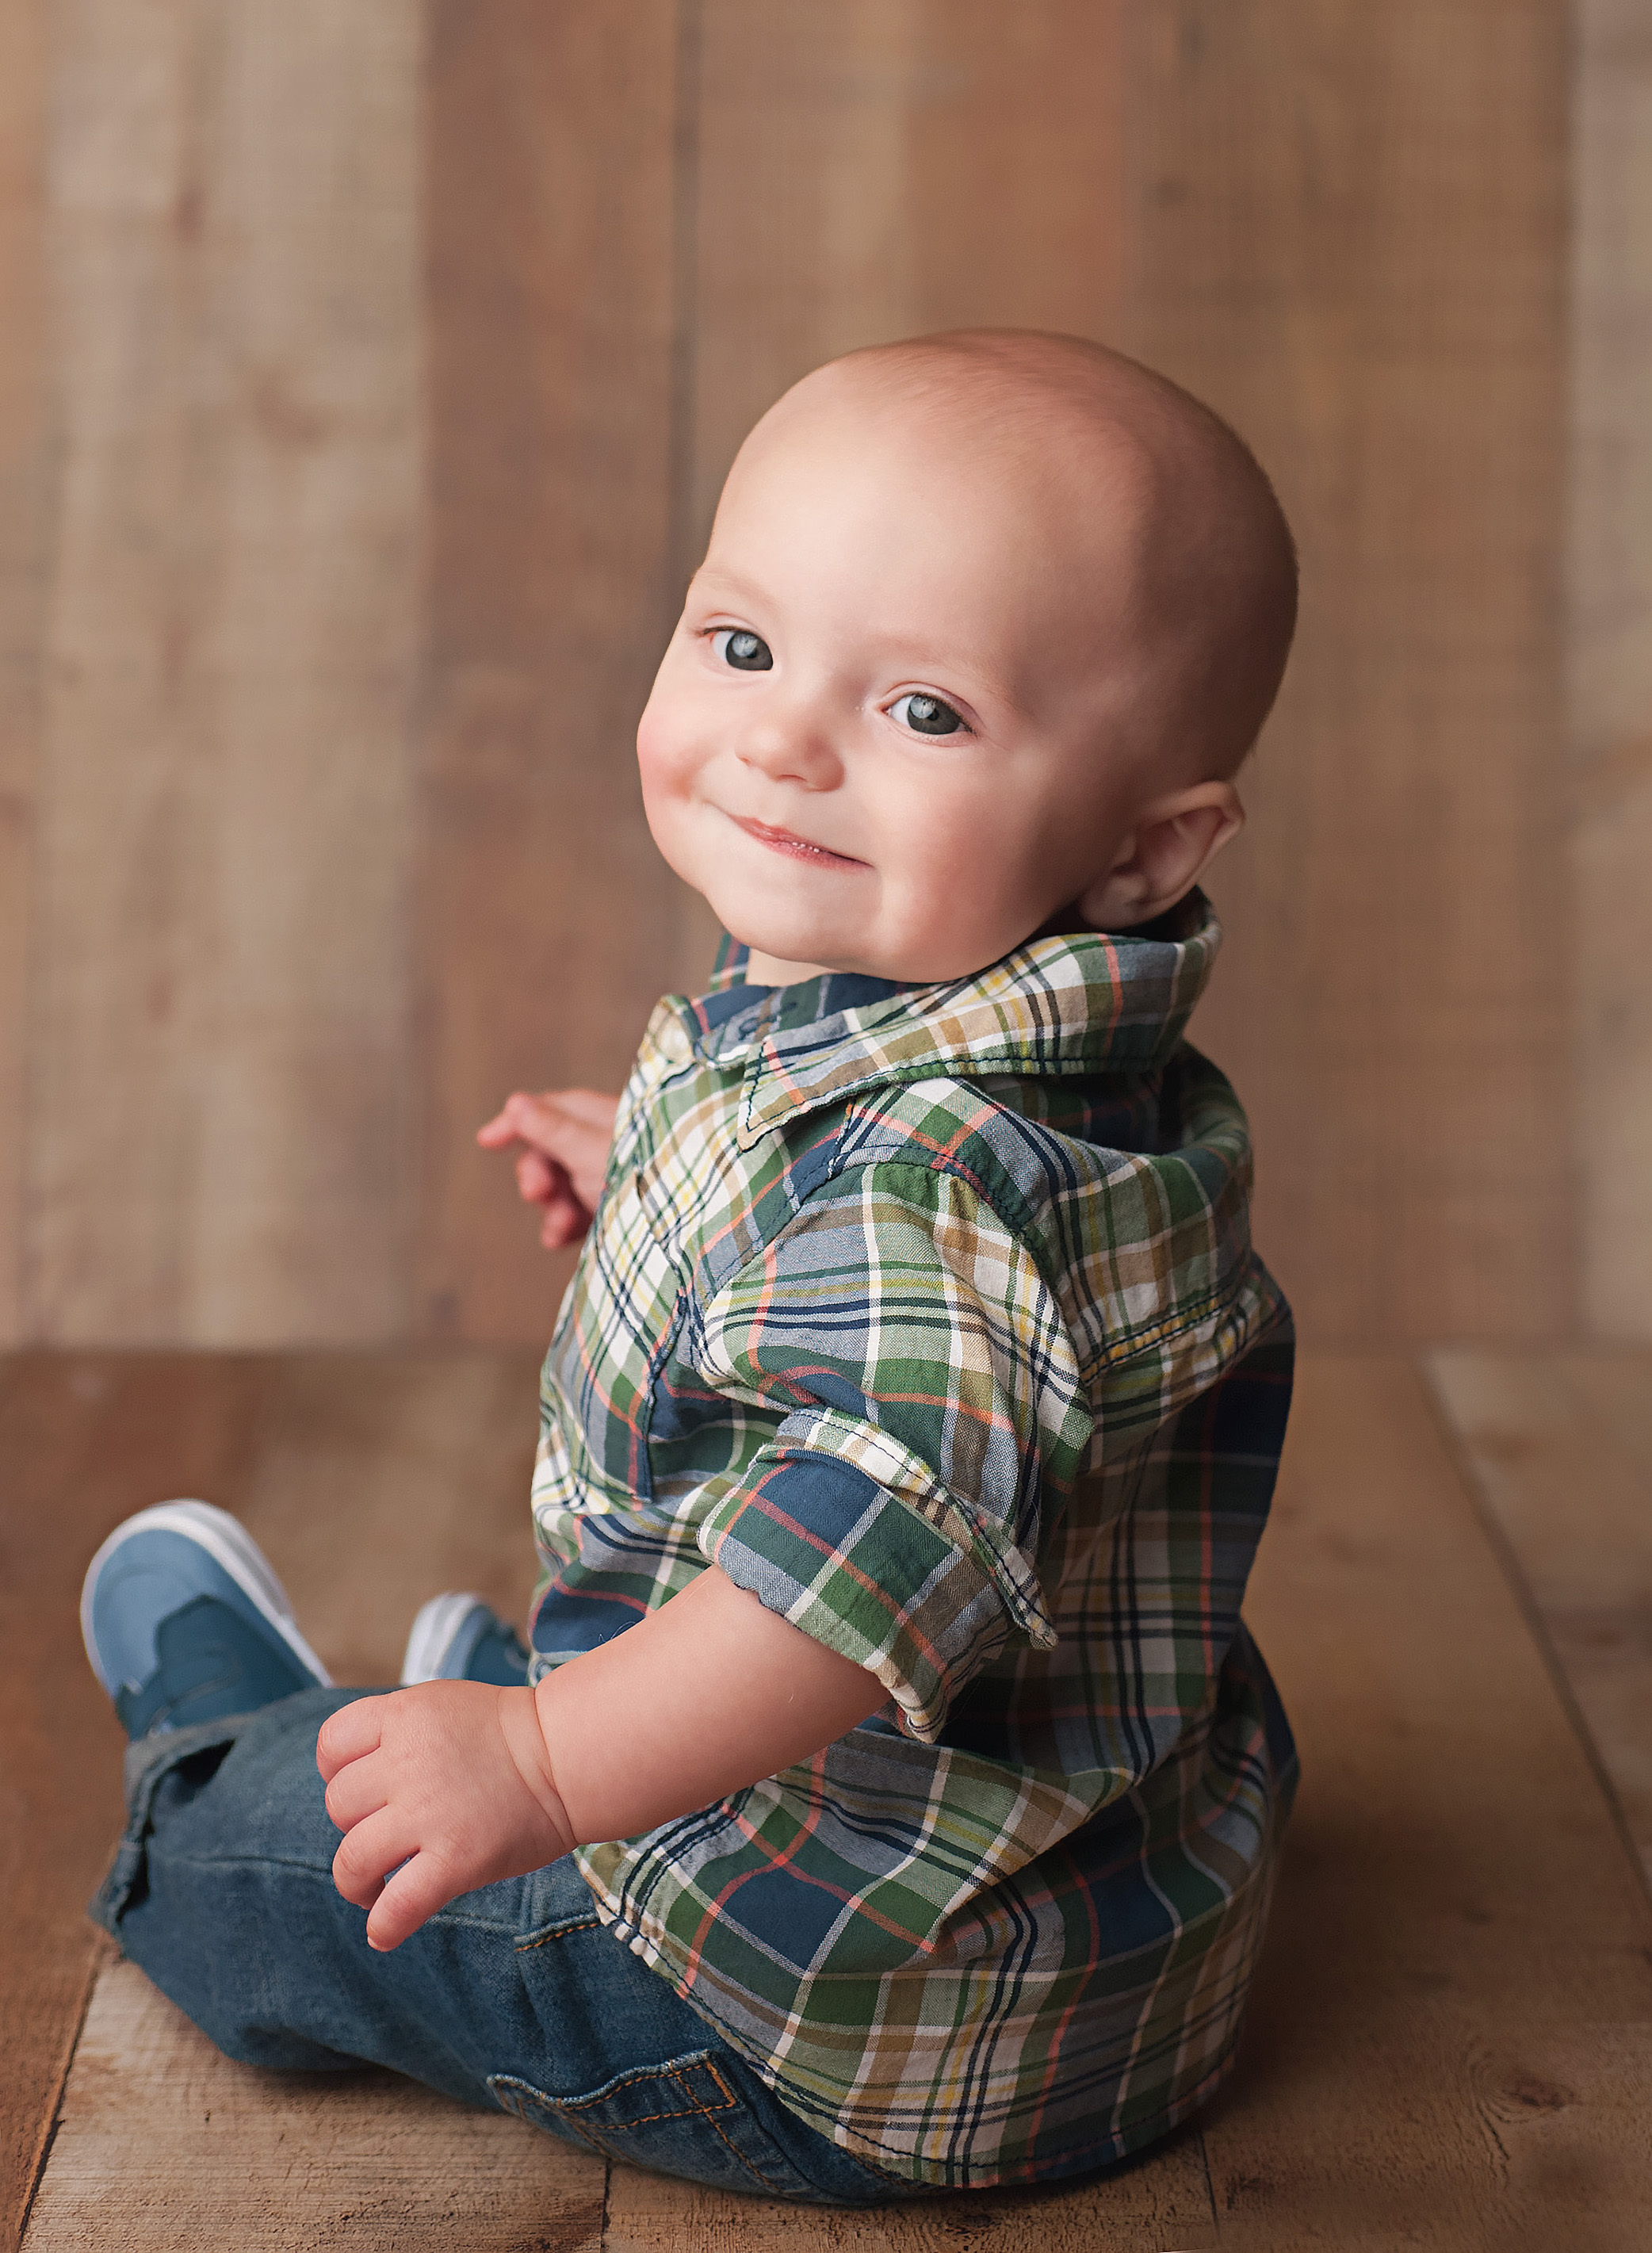 6 month old baby boy